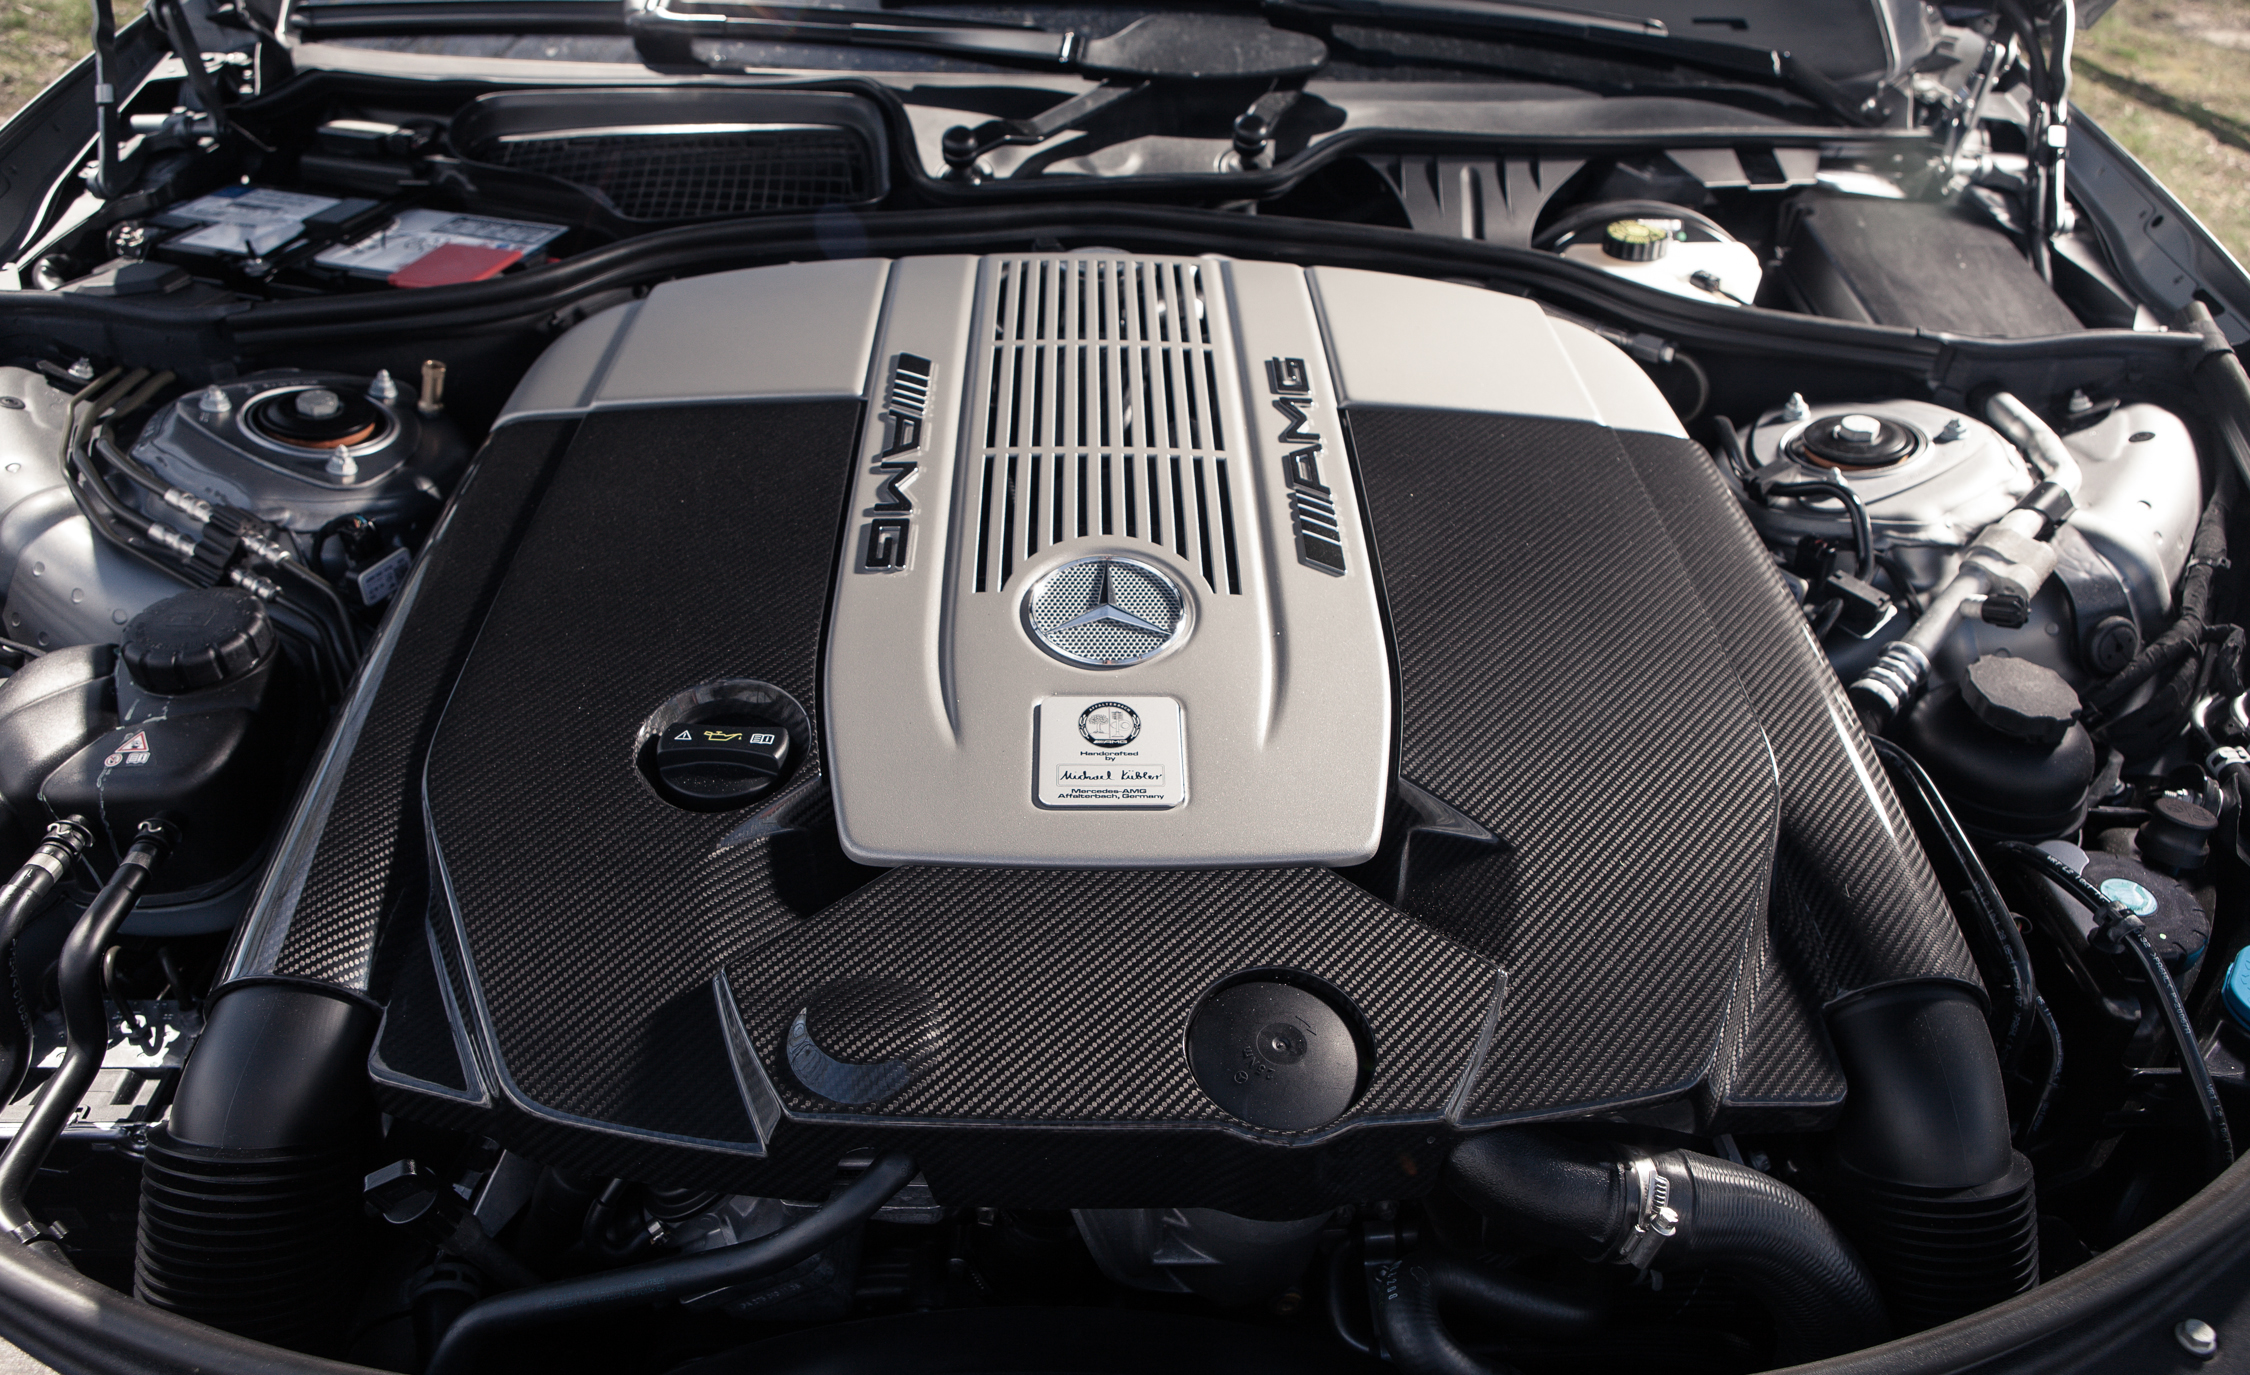 2013 Mercedes Benz CL65 AMG View Engine (Photo 27 of 27)